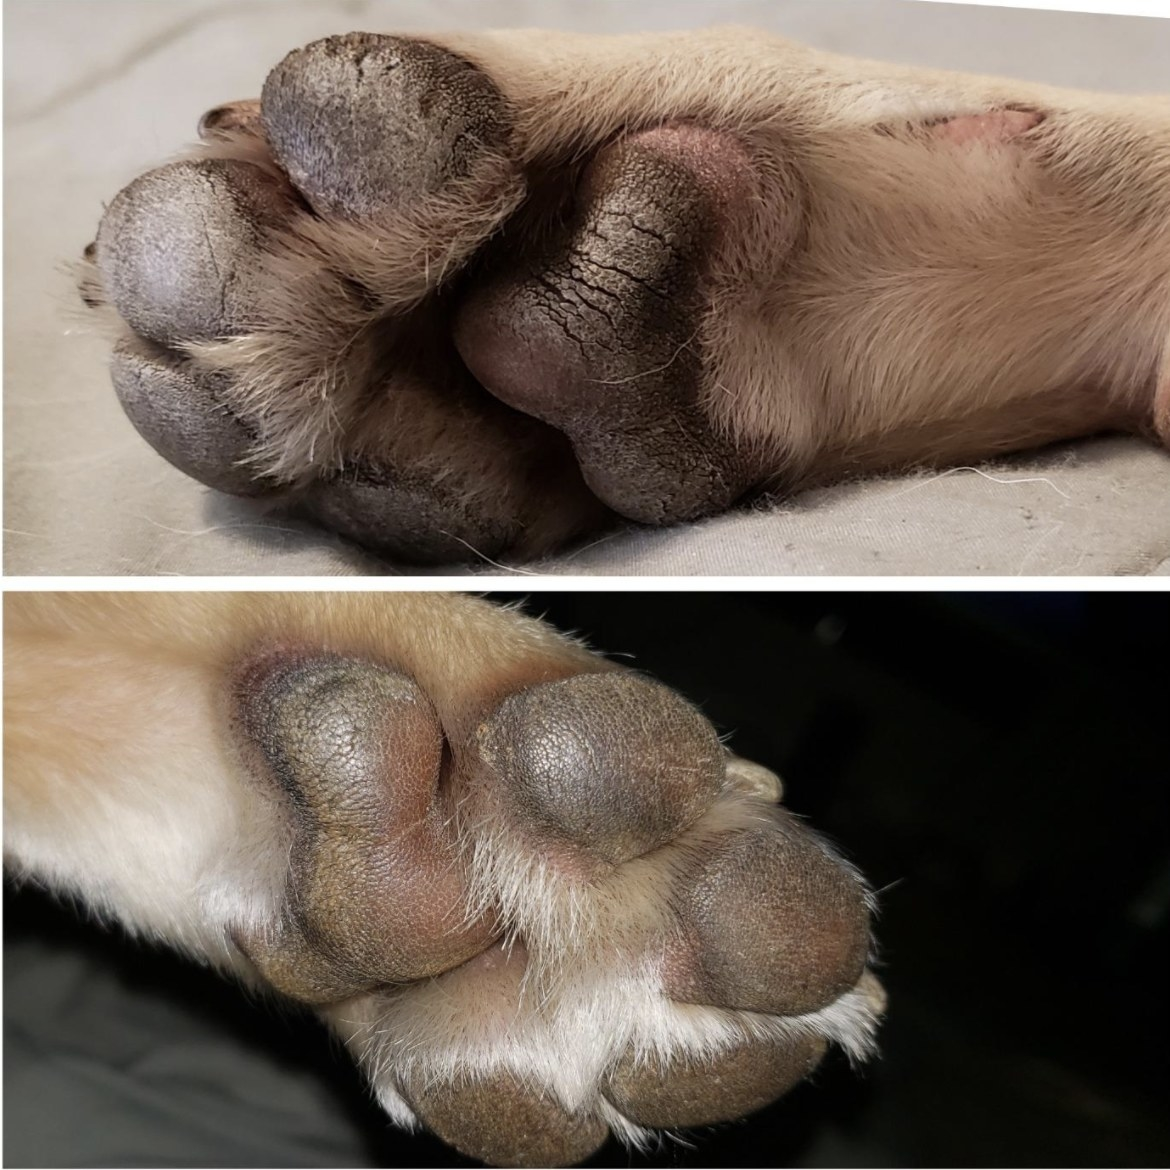 A before and after of a dog's paw